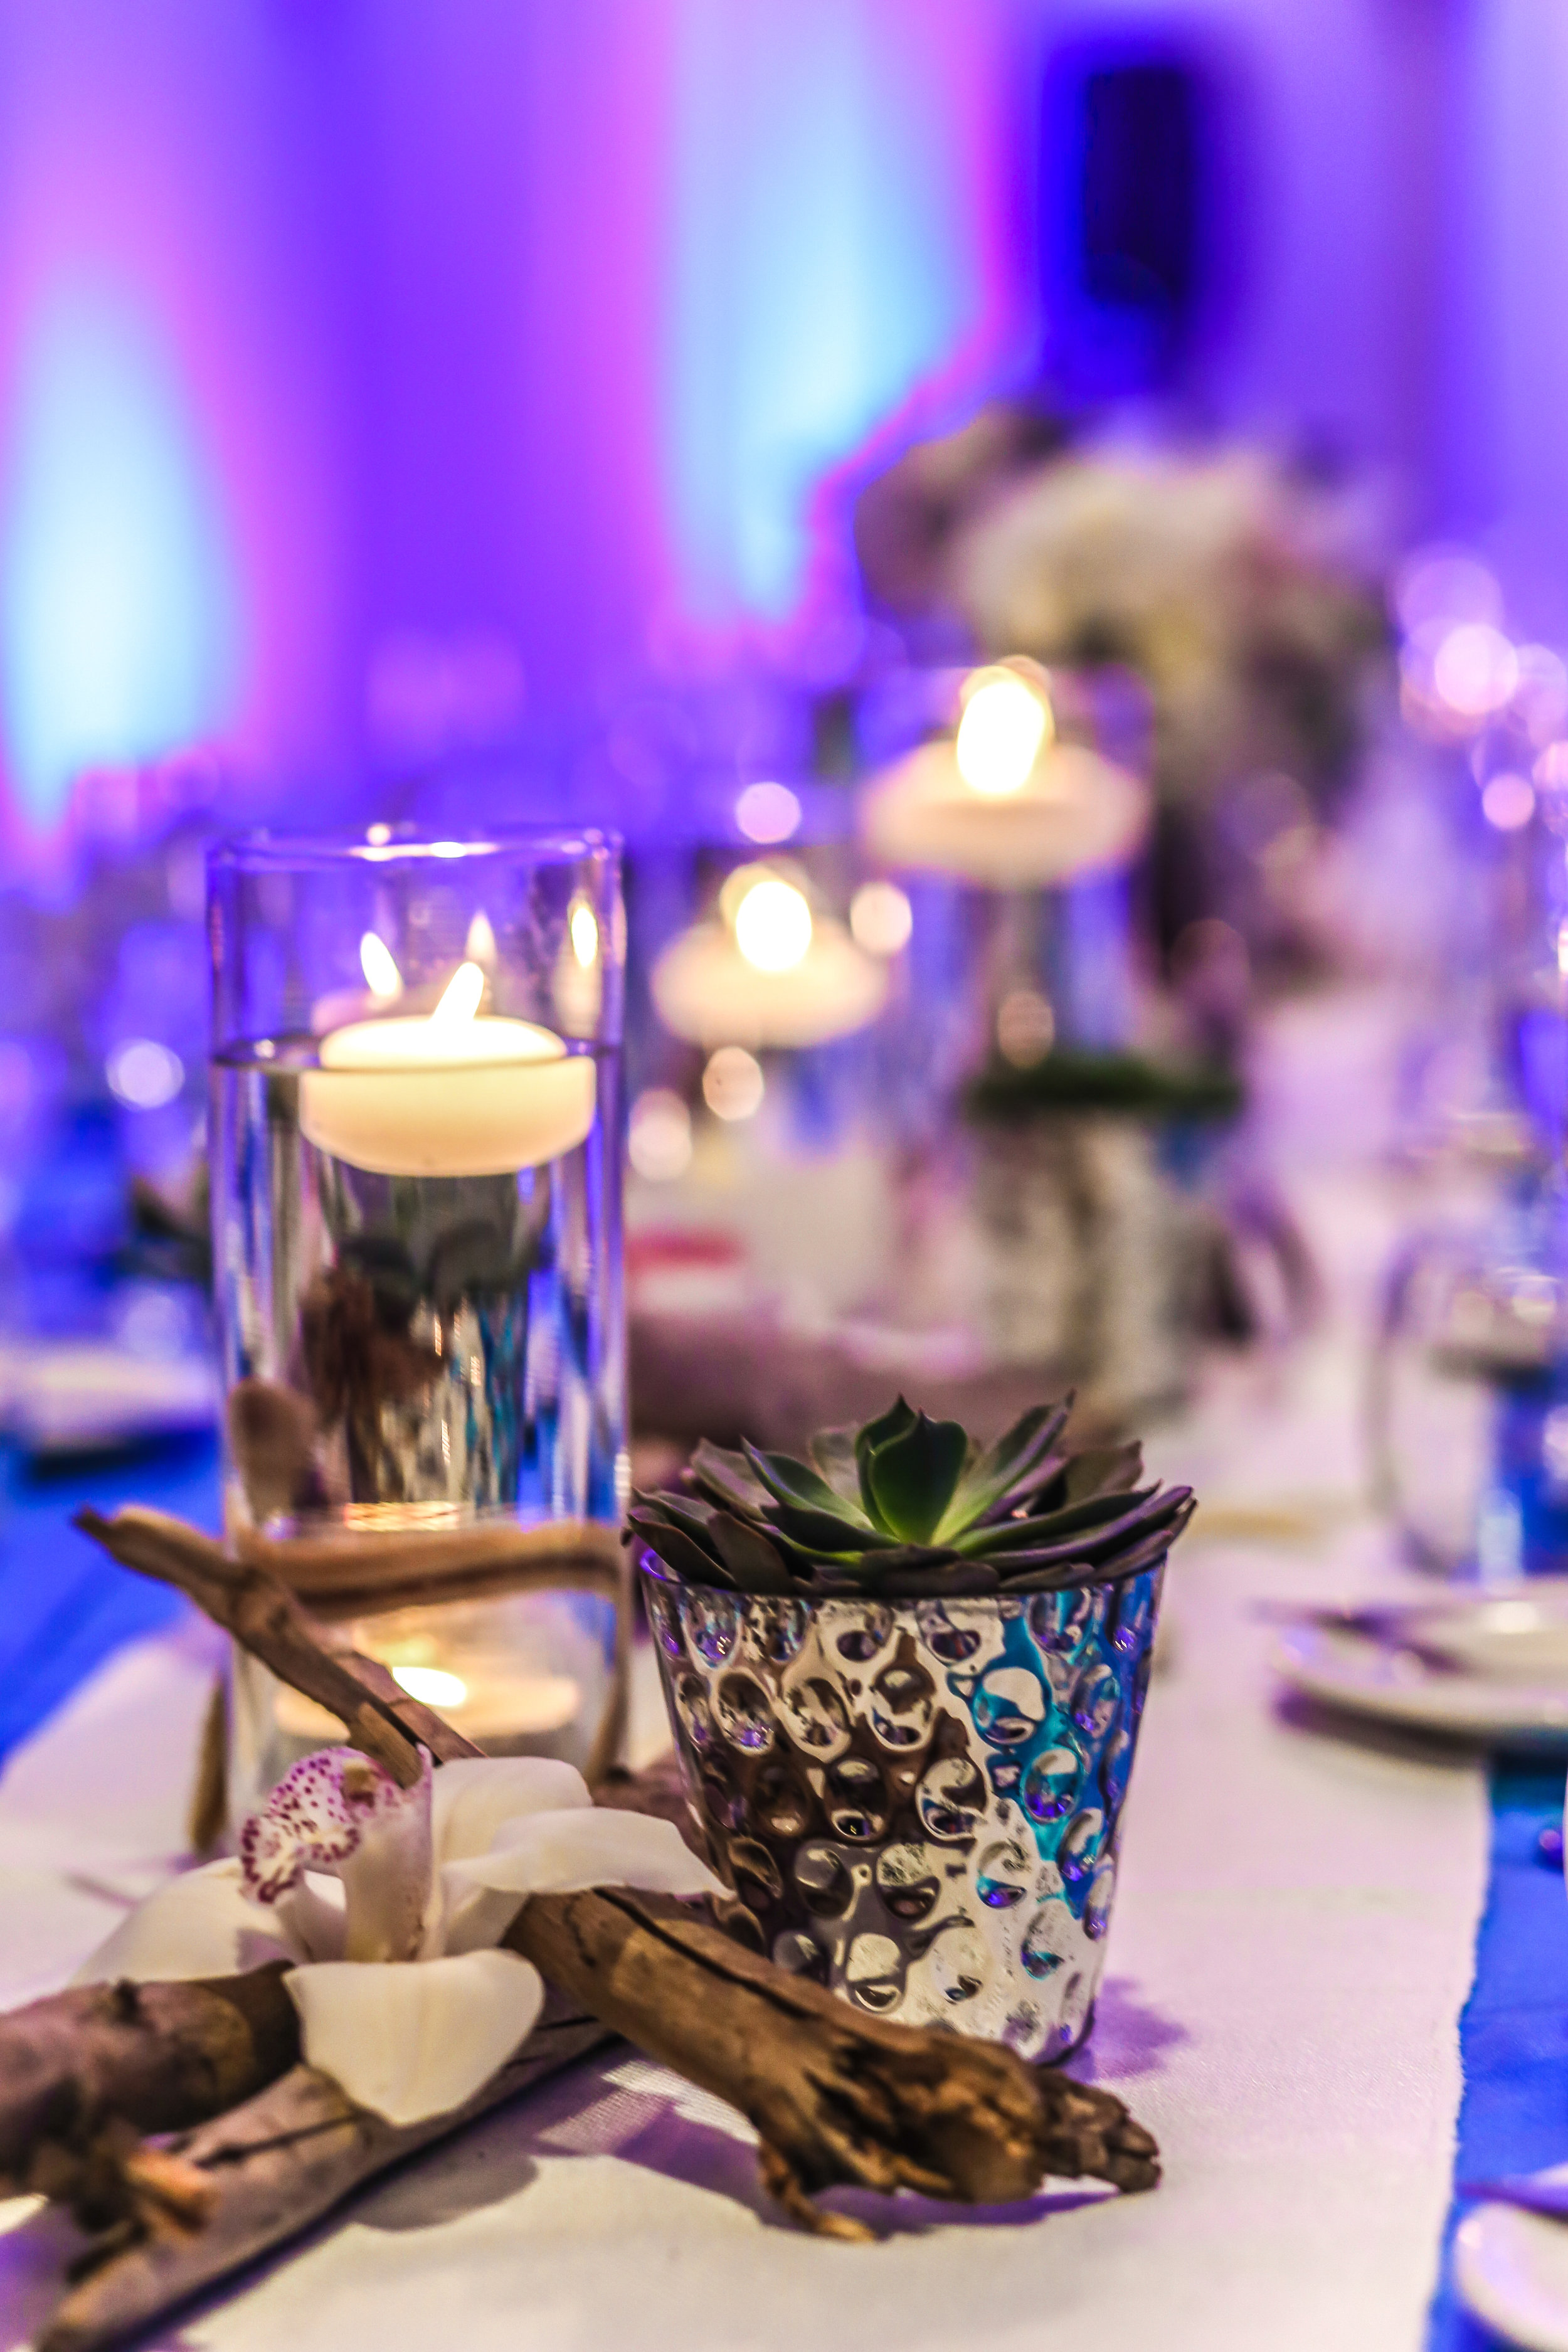 Burlap table runners on blue linens were set along feasting tables adorned with centerpieces of driftwood and accented with succulents, shells, soft candle light, and lanterns.